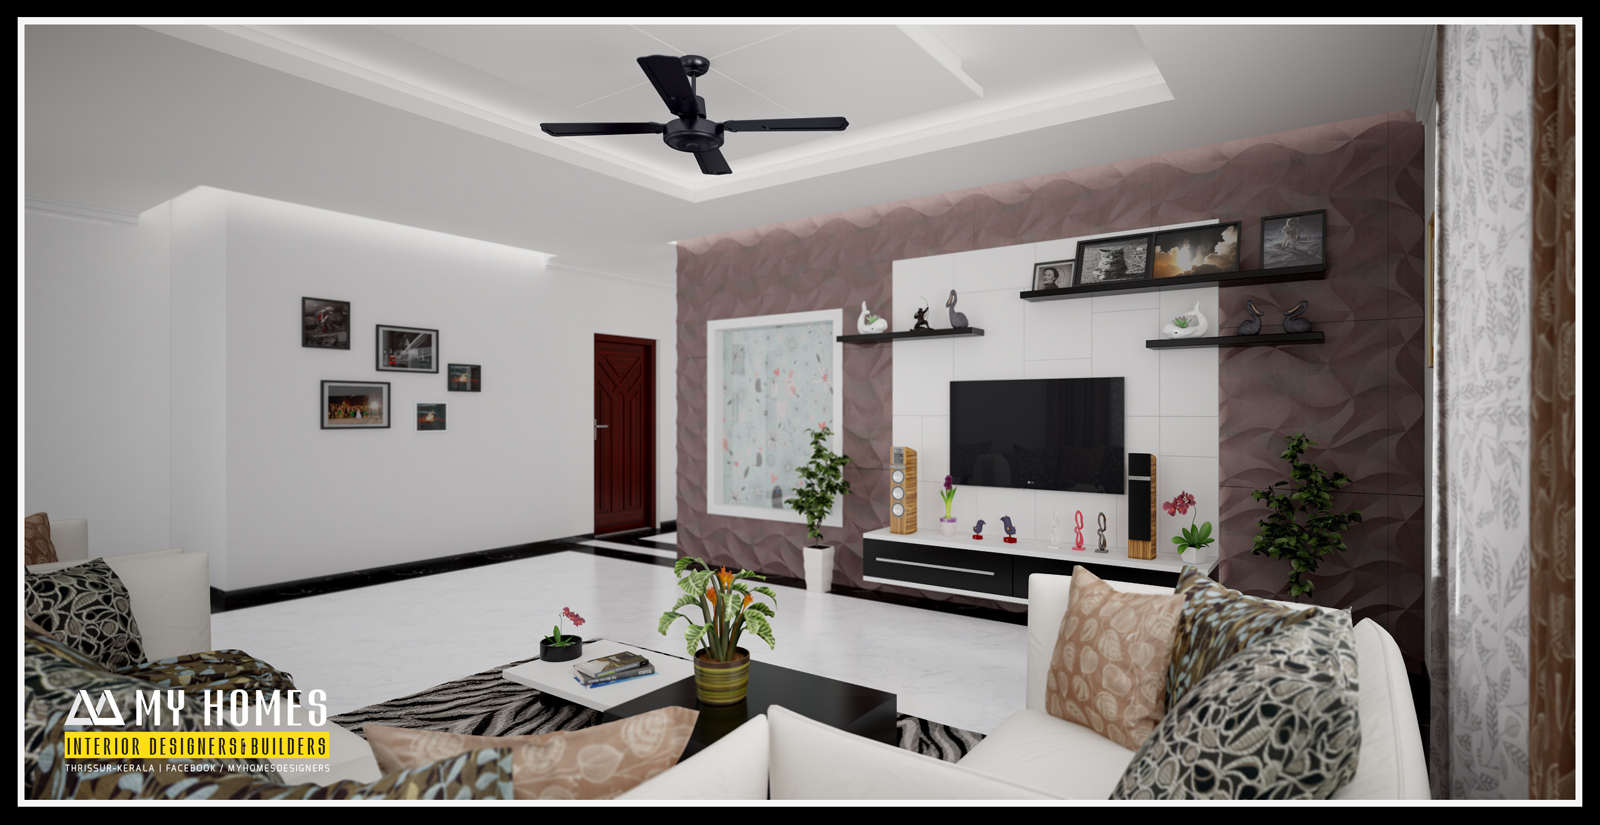 Modern home designs archives page 4 of 6 for Home interior designs in india photos